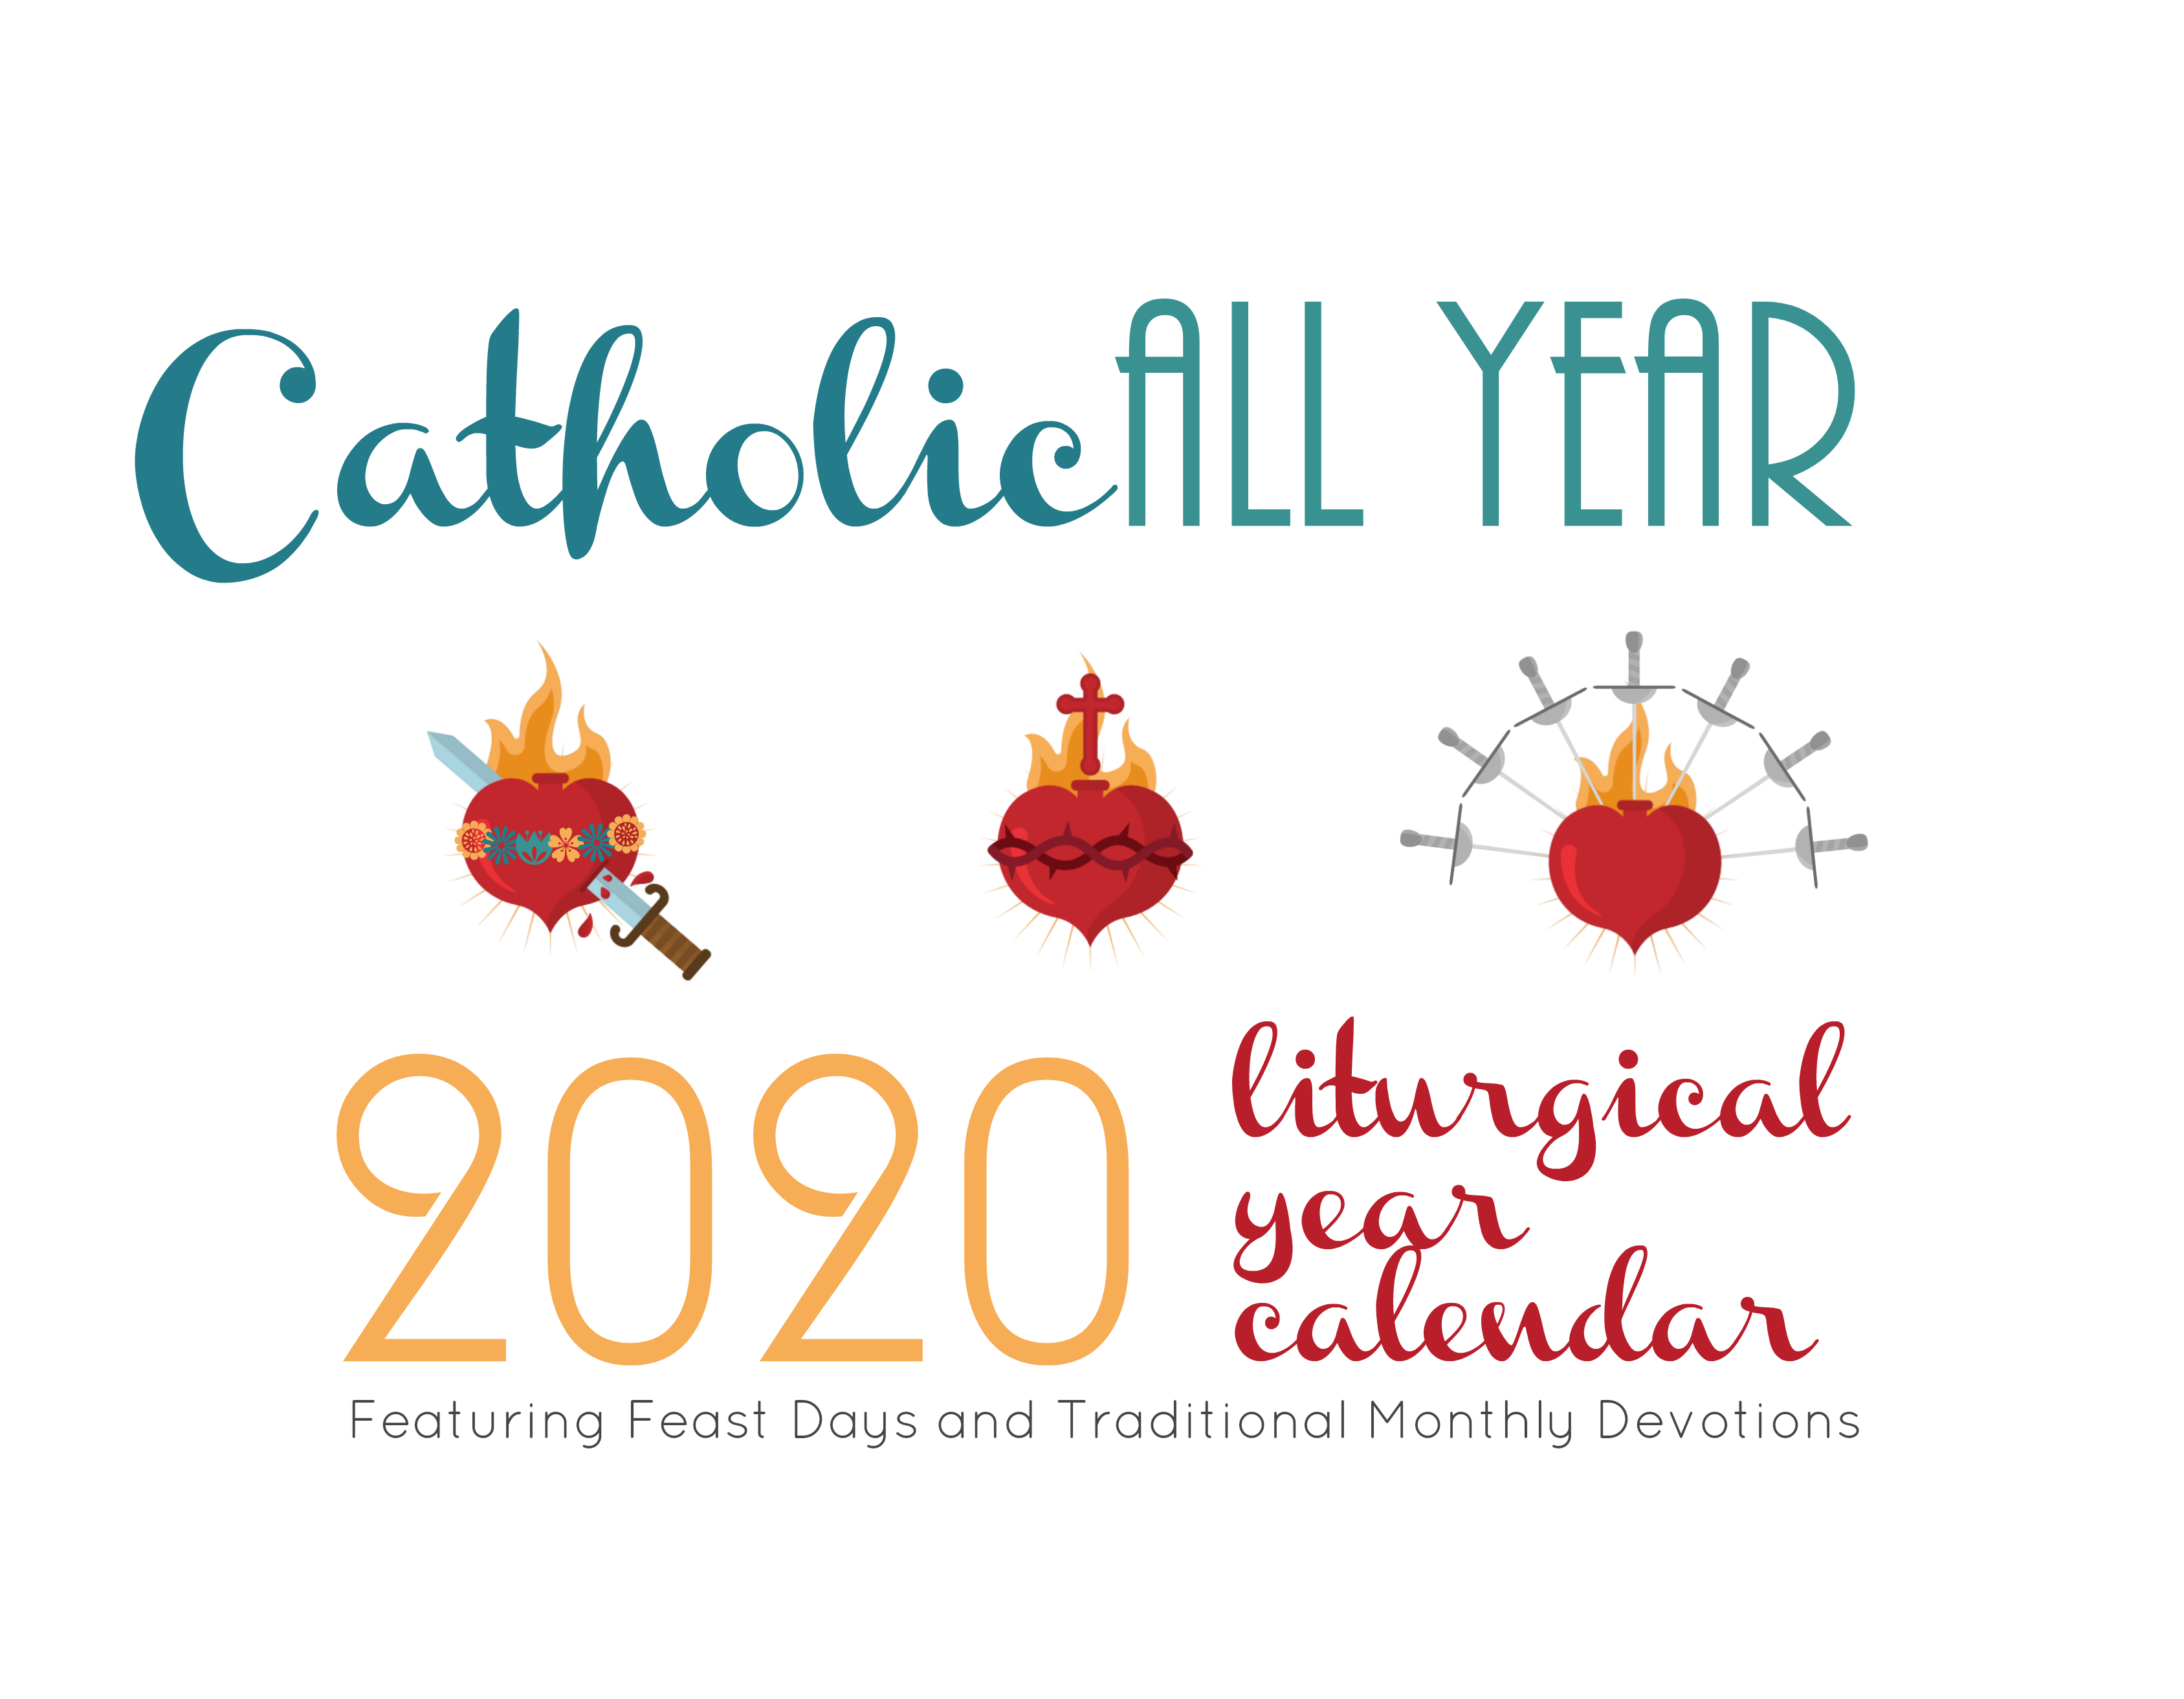 Catholic All Year 2020 Monthly Devotions Liturgical Year Calendar *digital  Download*